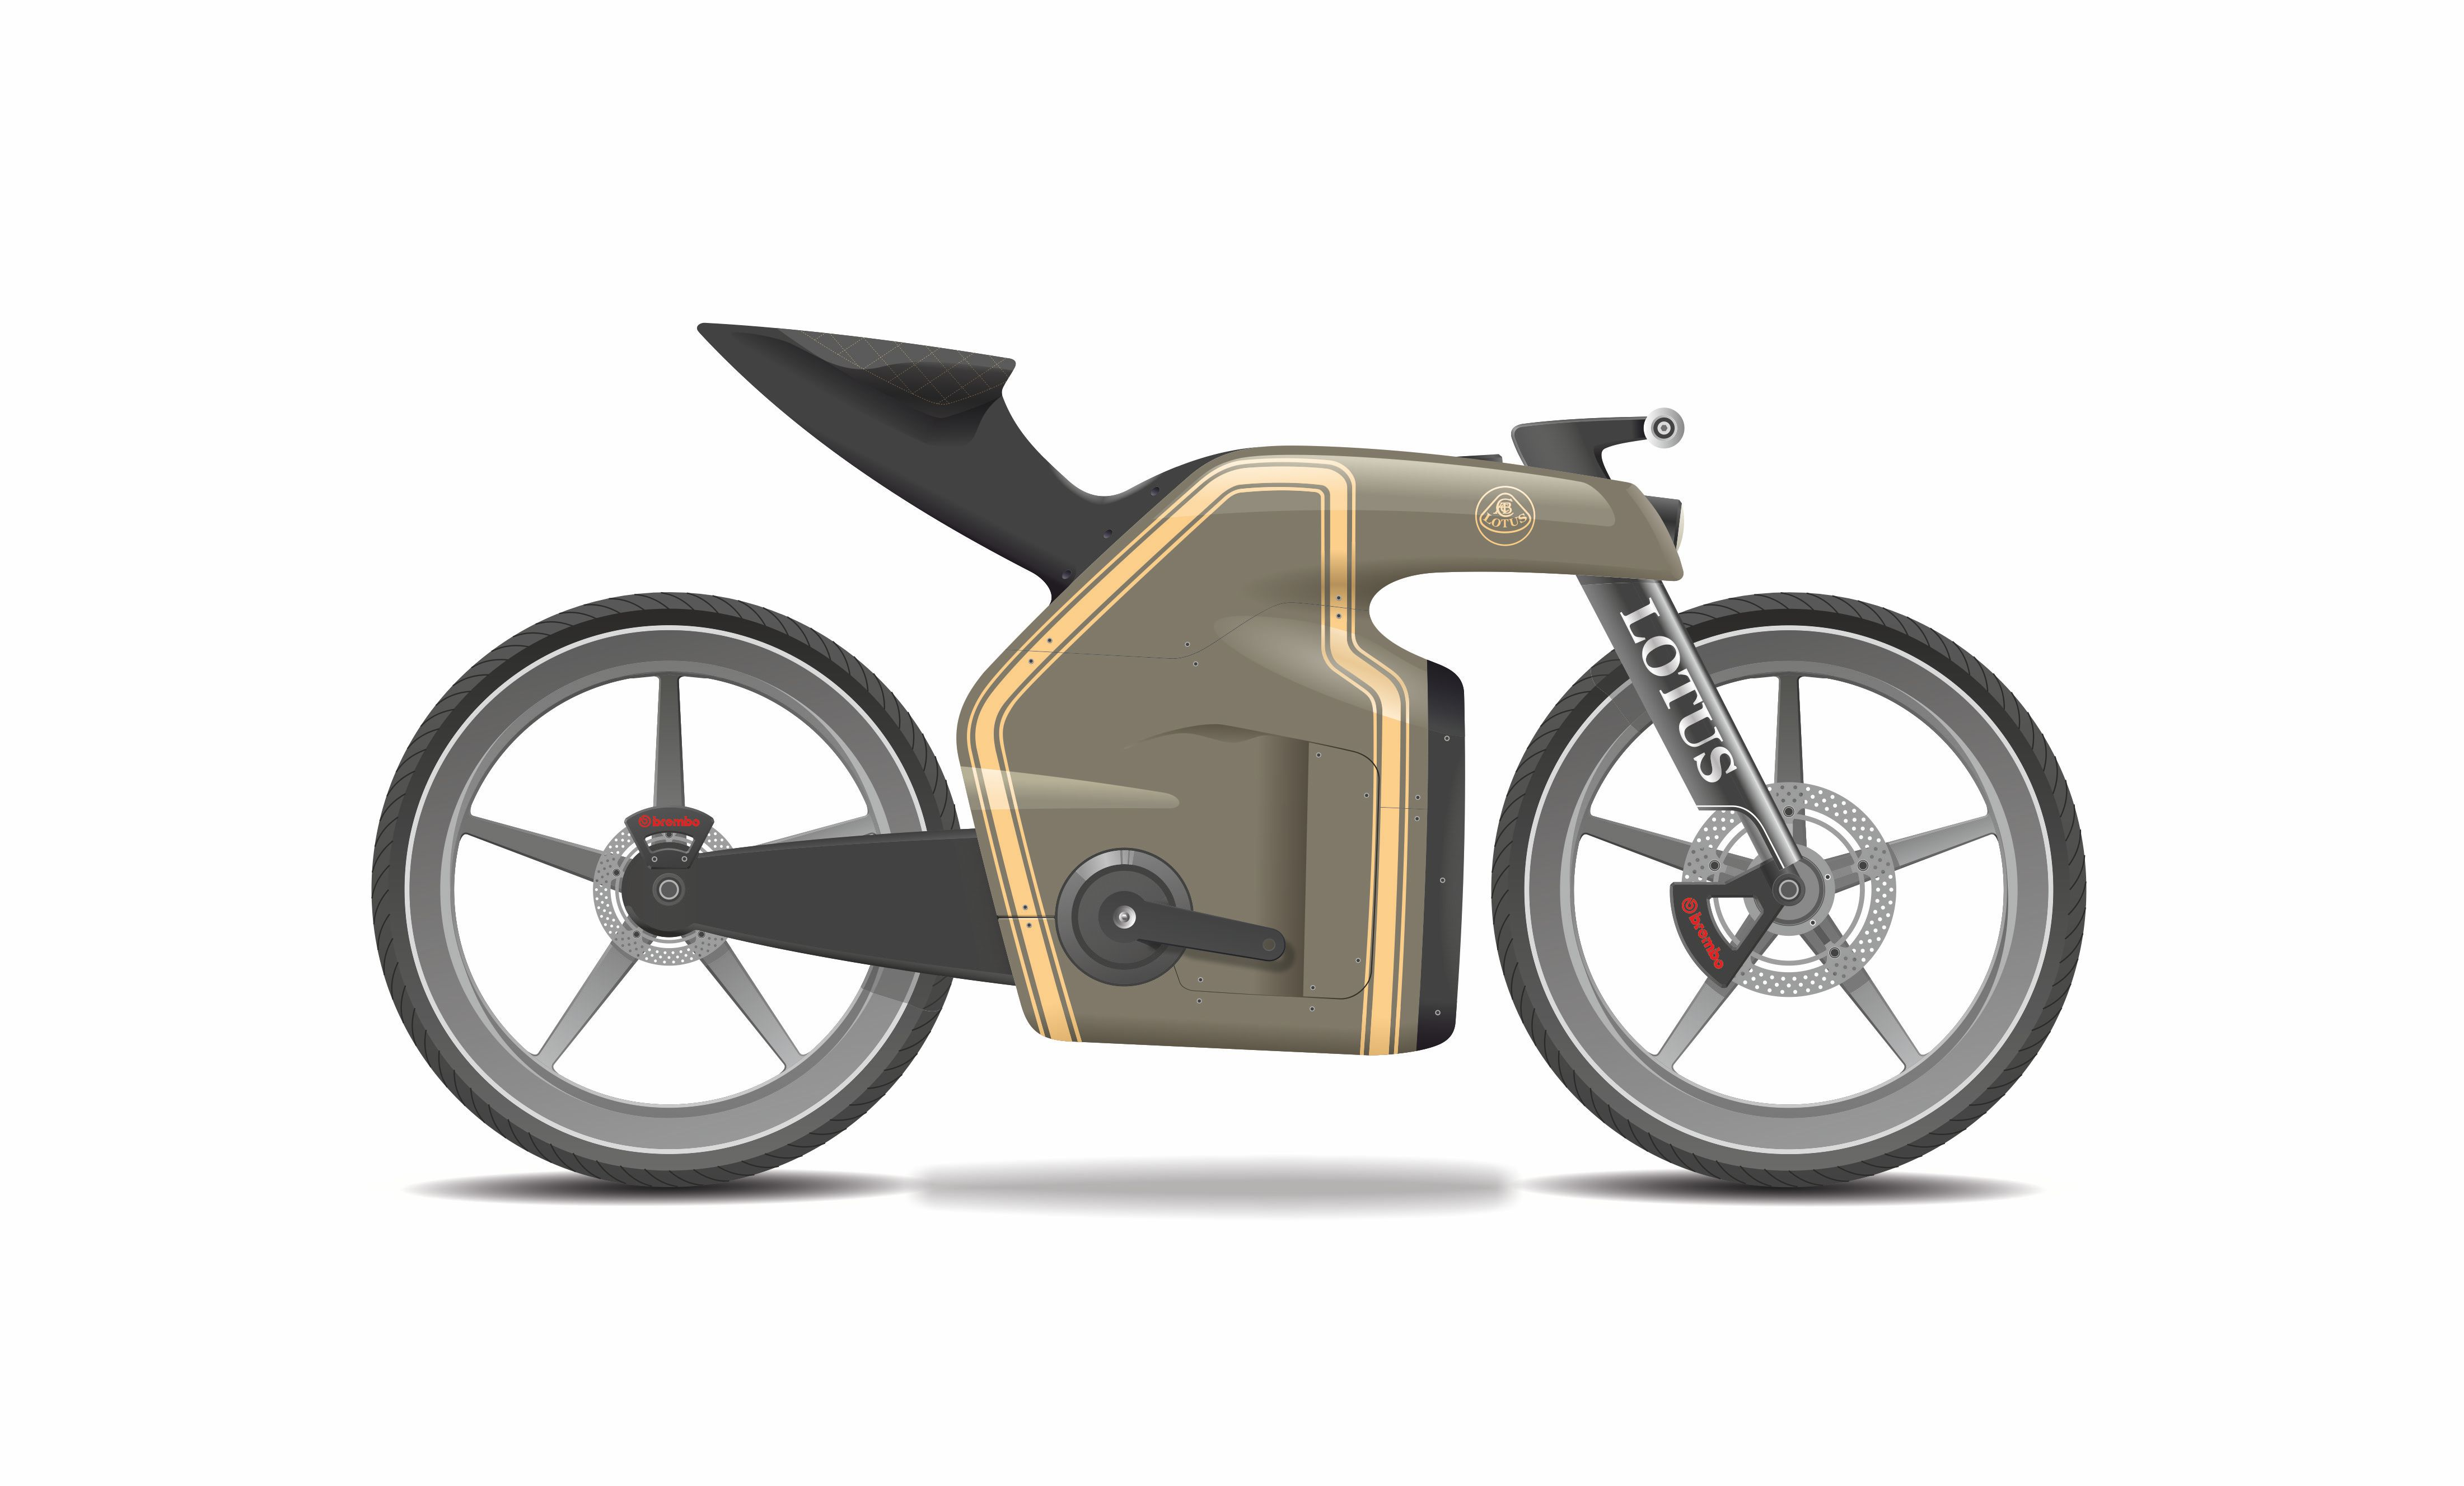 lotus b 01 electric bicycle concept for lotus motorcycle. Black Bedroom Furniture Sets. Home Design Ideas